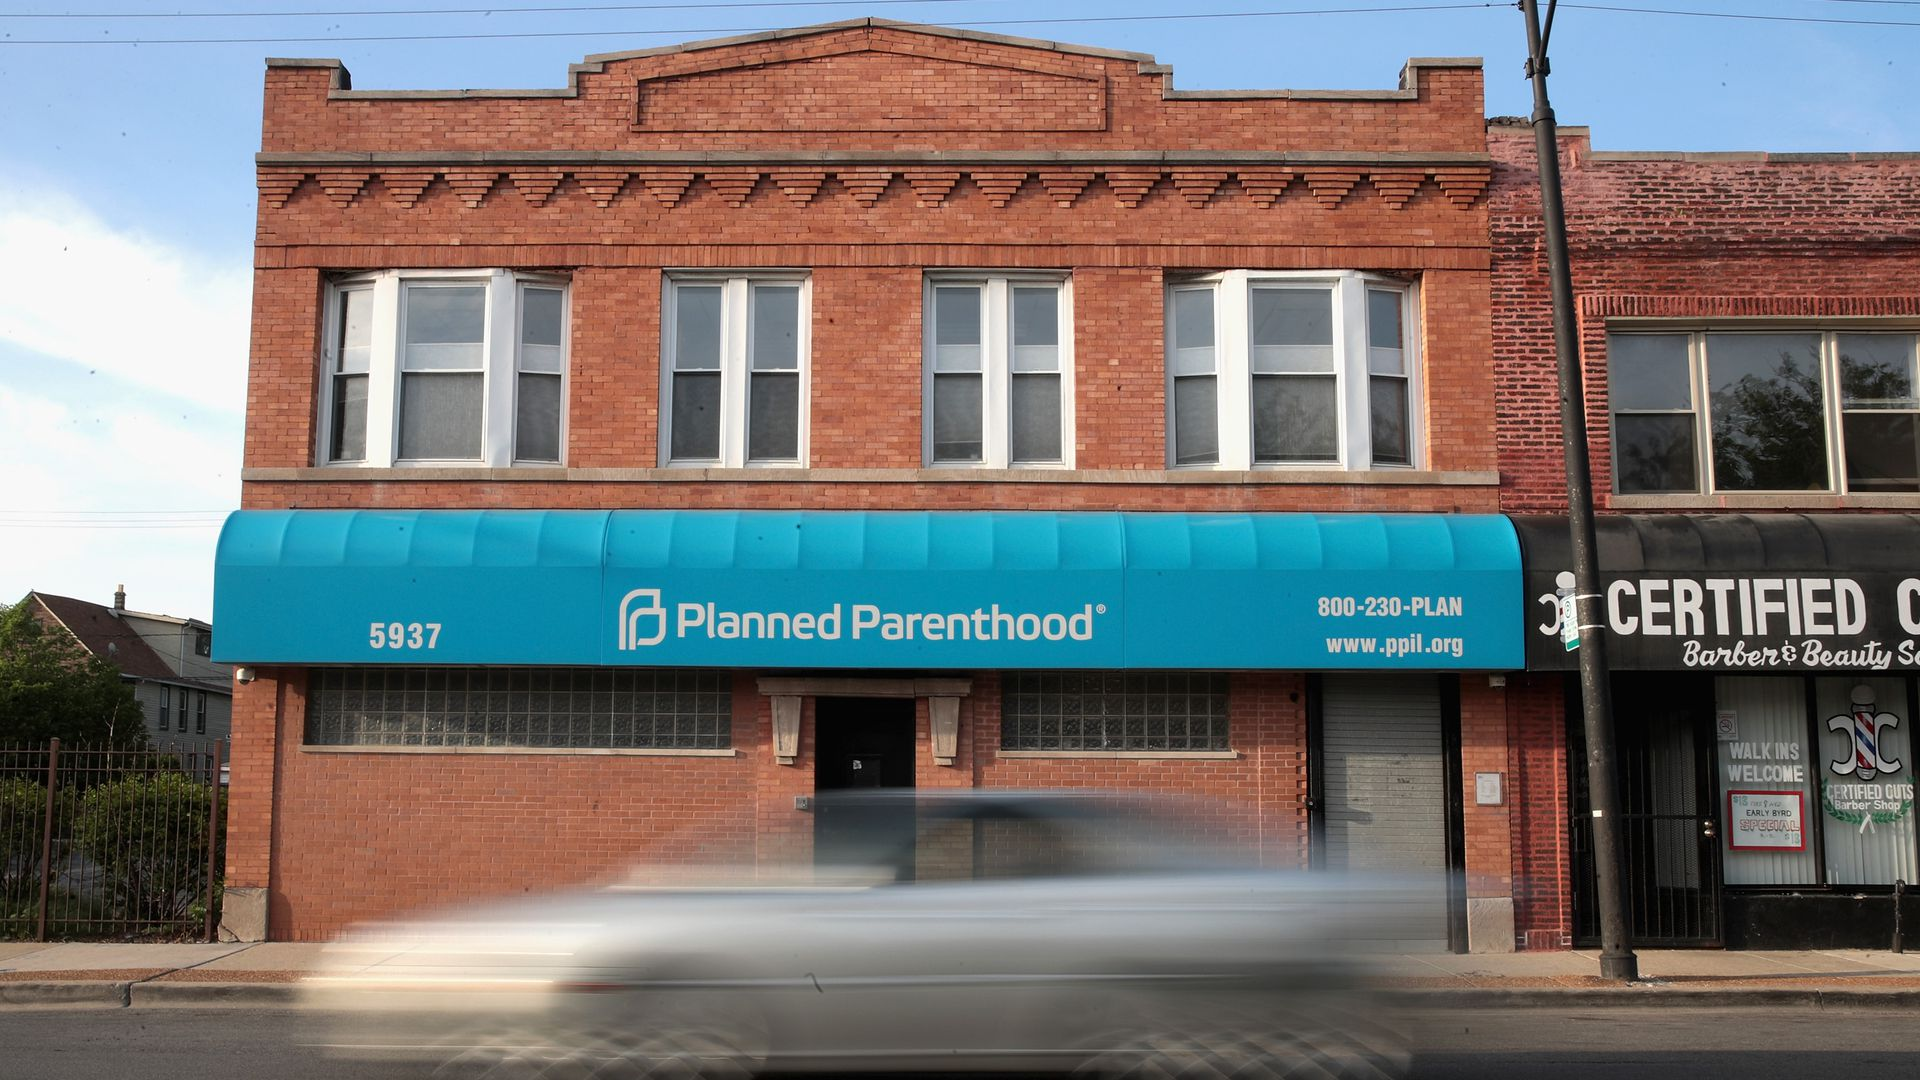 A car drives past a Planned Parenthood clinic in Chicago.